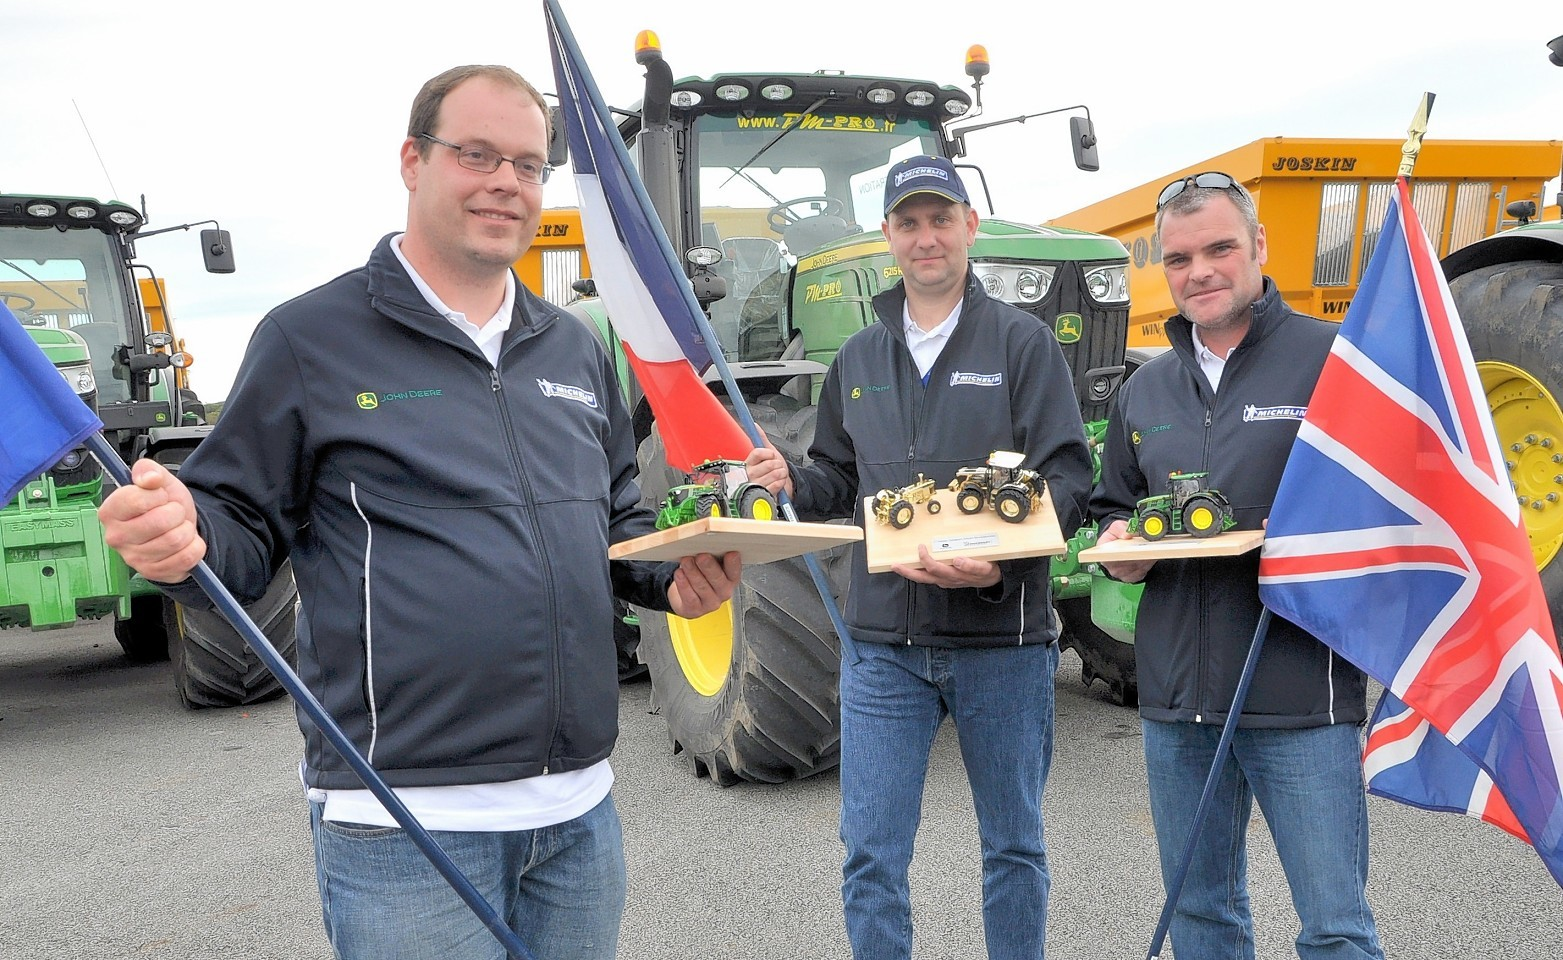 From left, in third place was Edwin Dekkor, Netherlands; winner Sebastien Mahaut from France and in second place was Simon Richardson from UK.